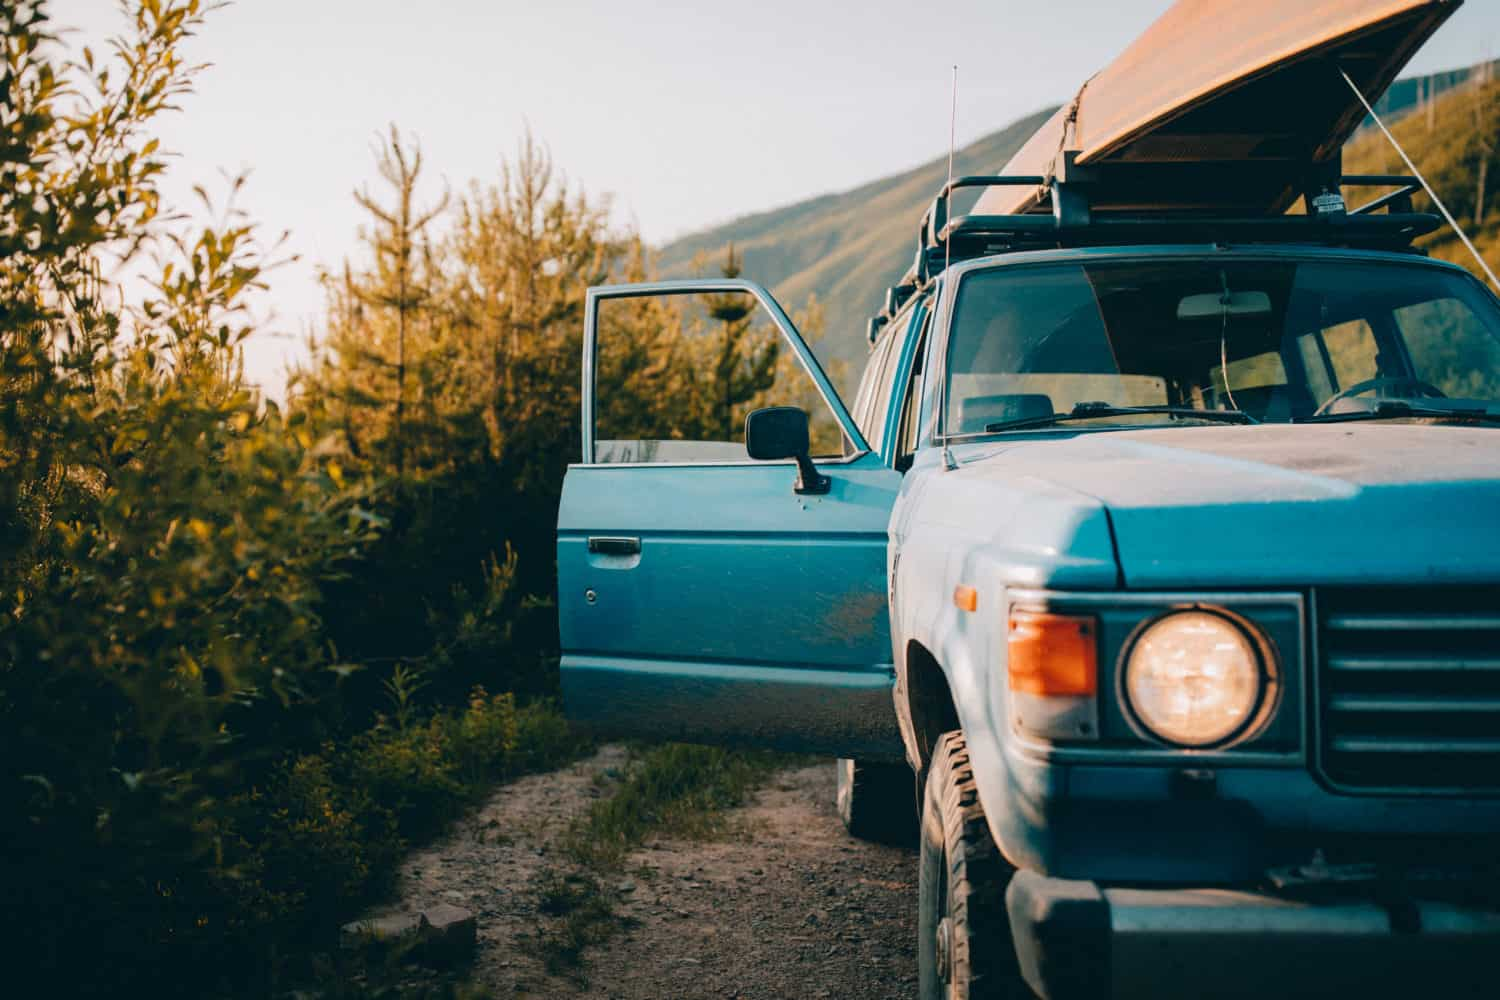 Blue Toyota FJ Land Cruiser with canoe on top